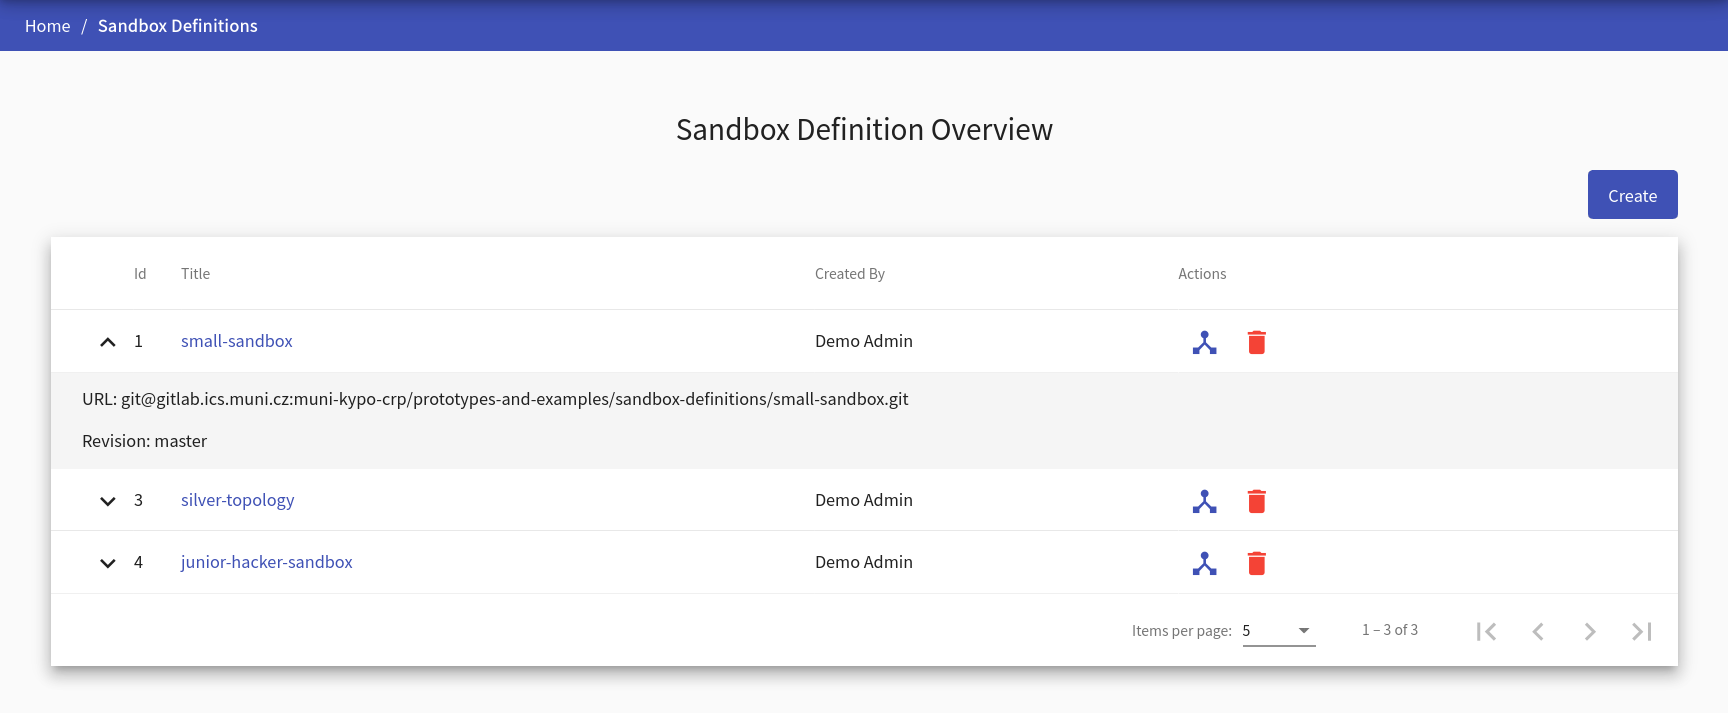 sandbox-definition-overview